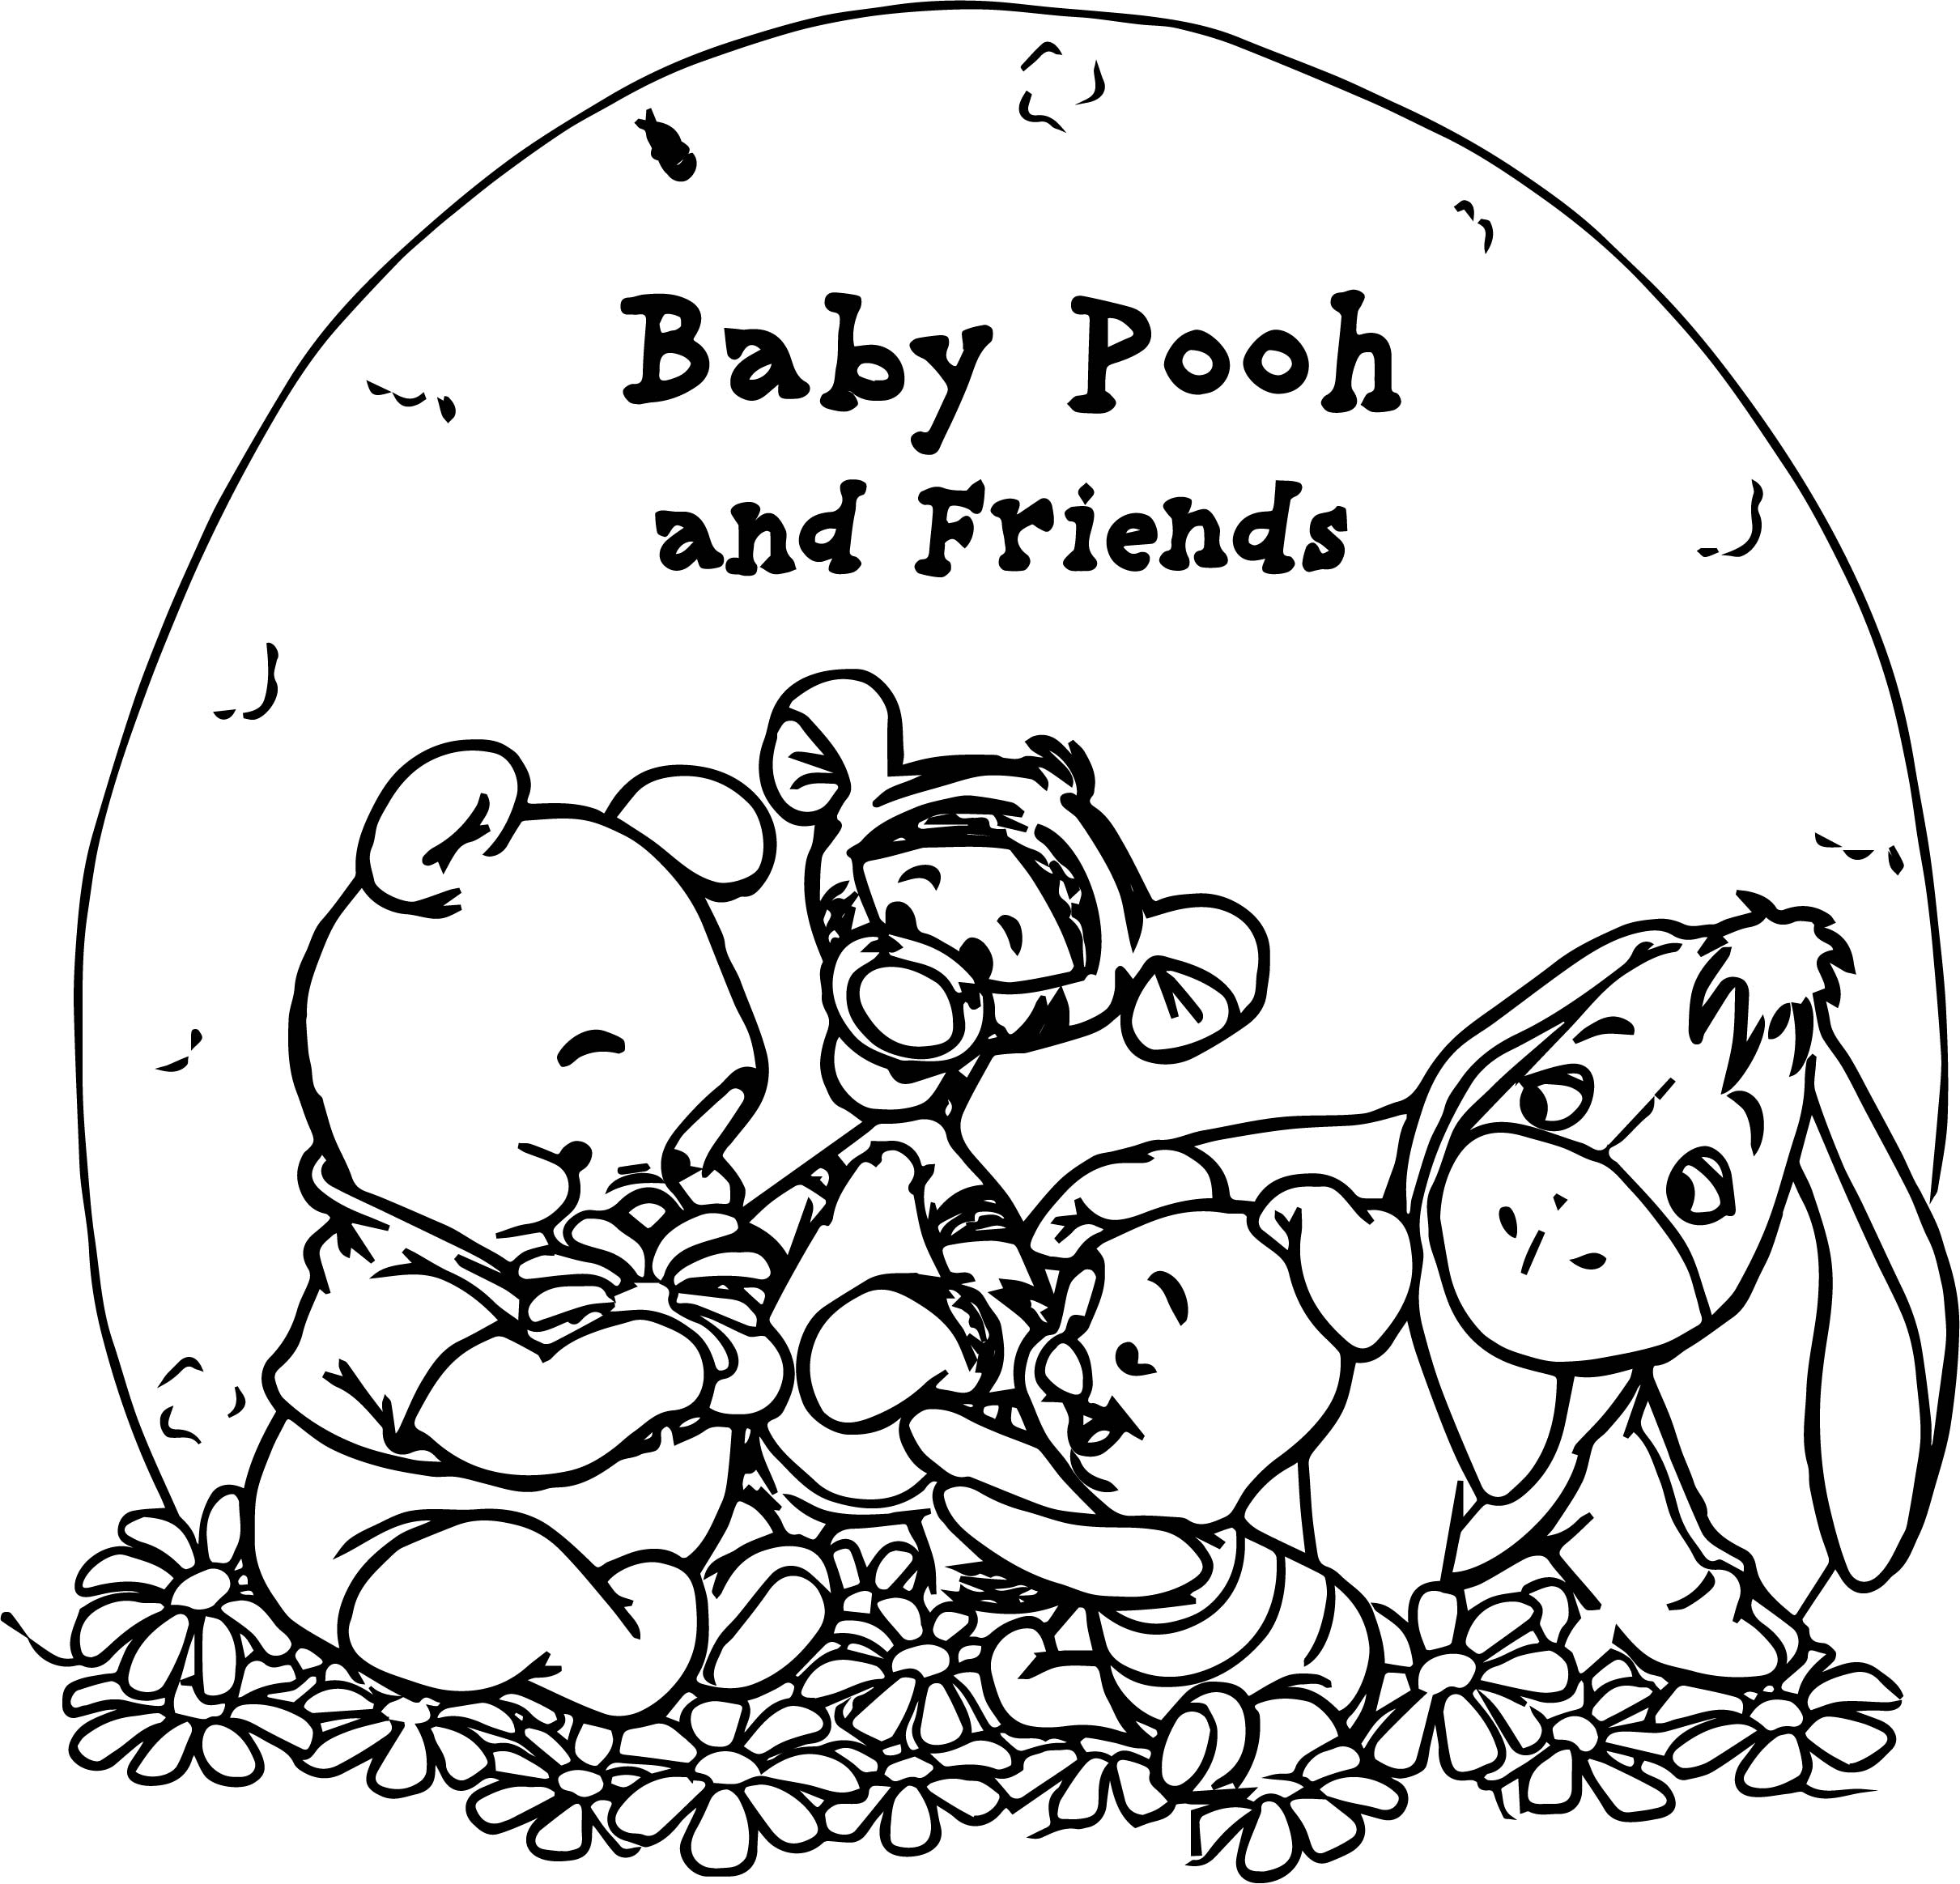 pooh bear coloring pages - pooh bear baby pooh coloring page